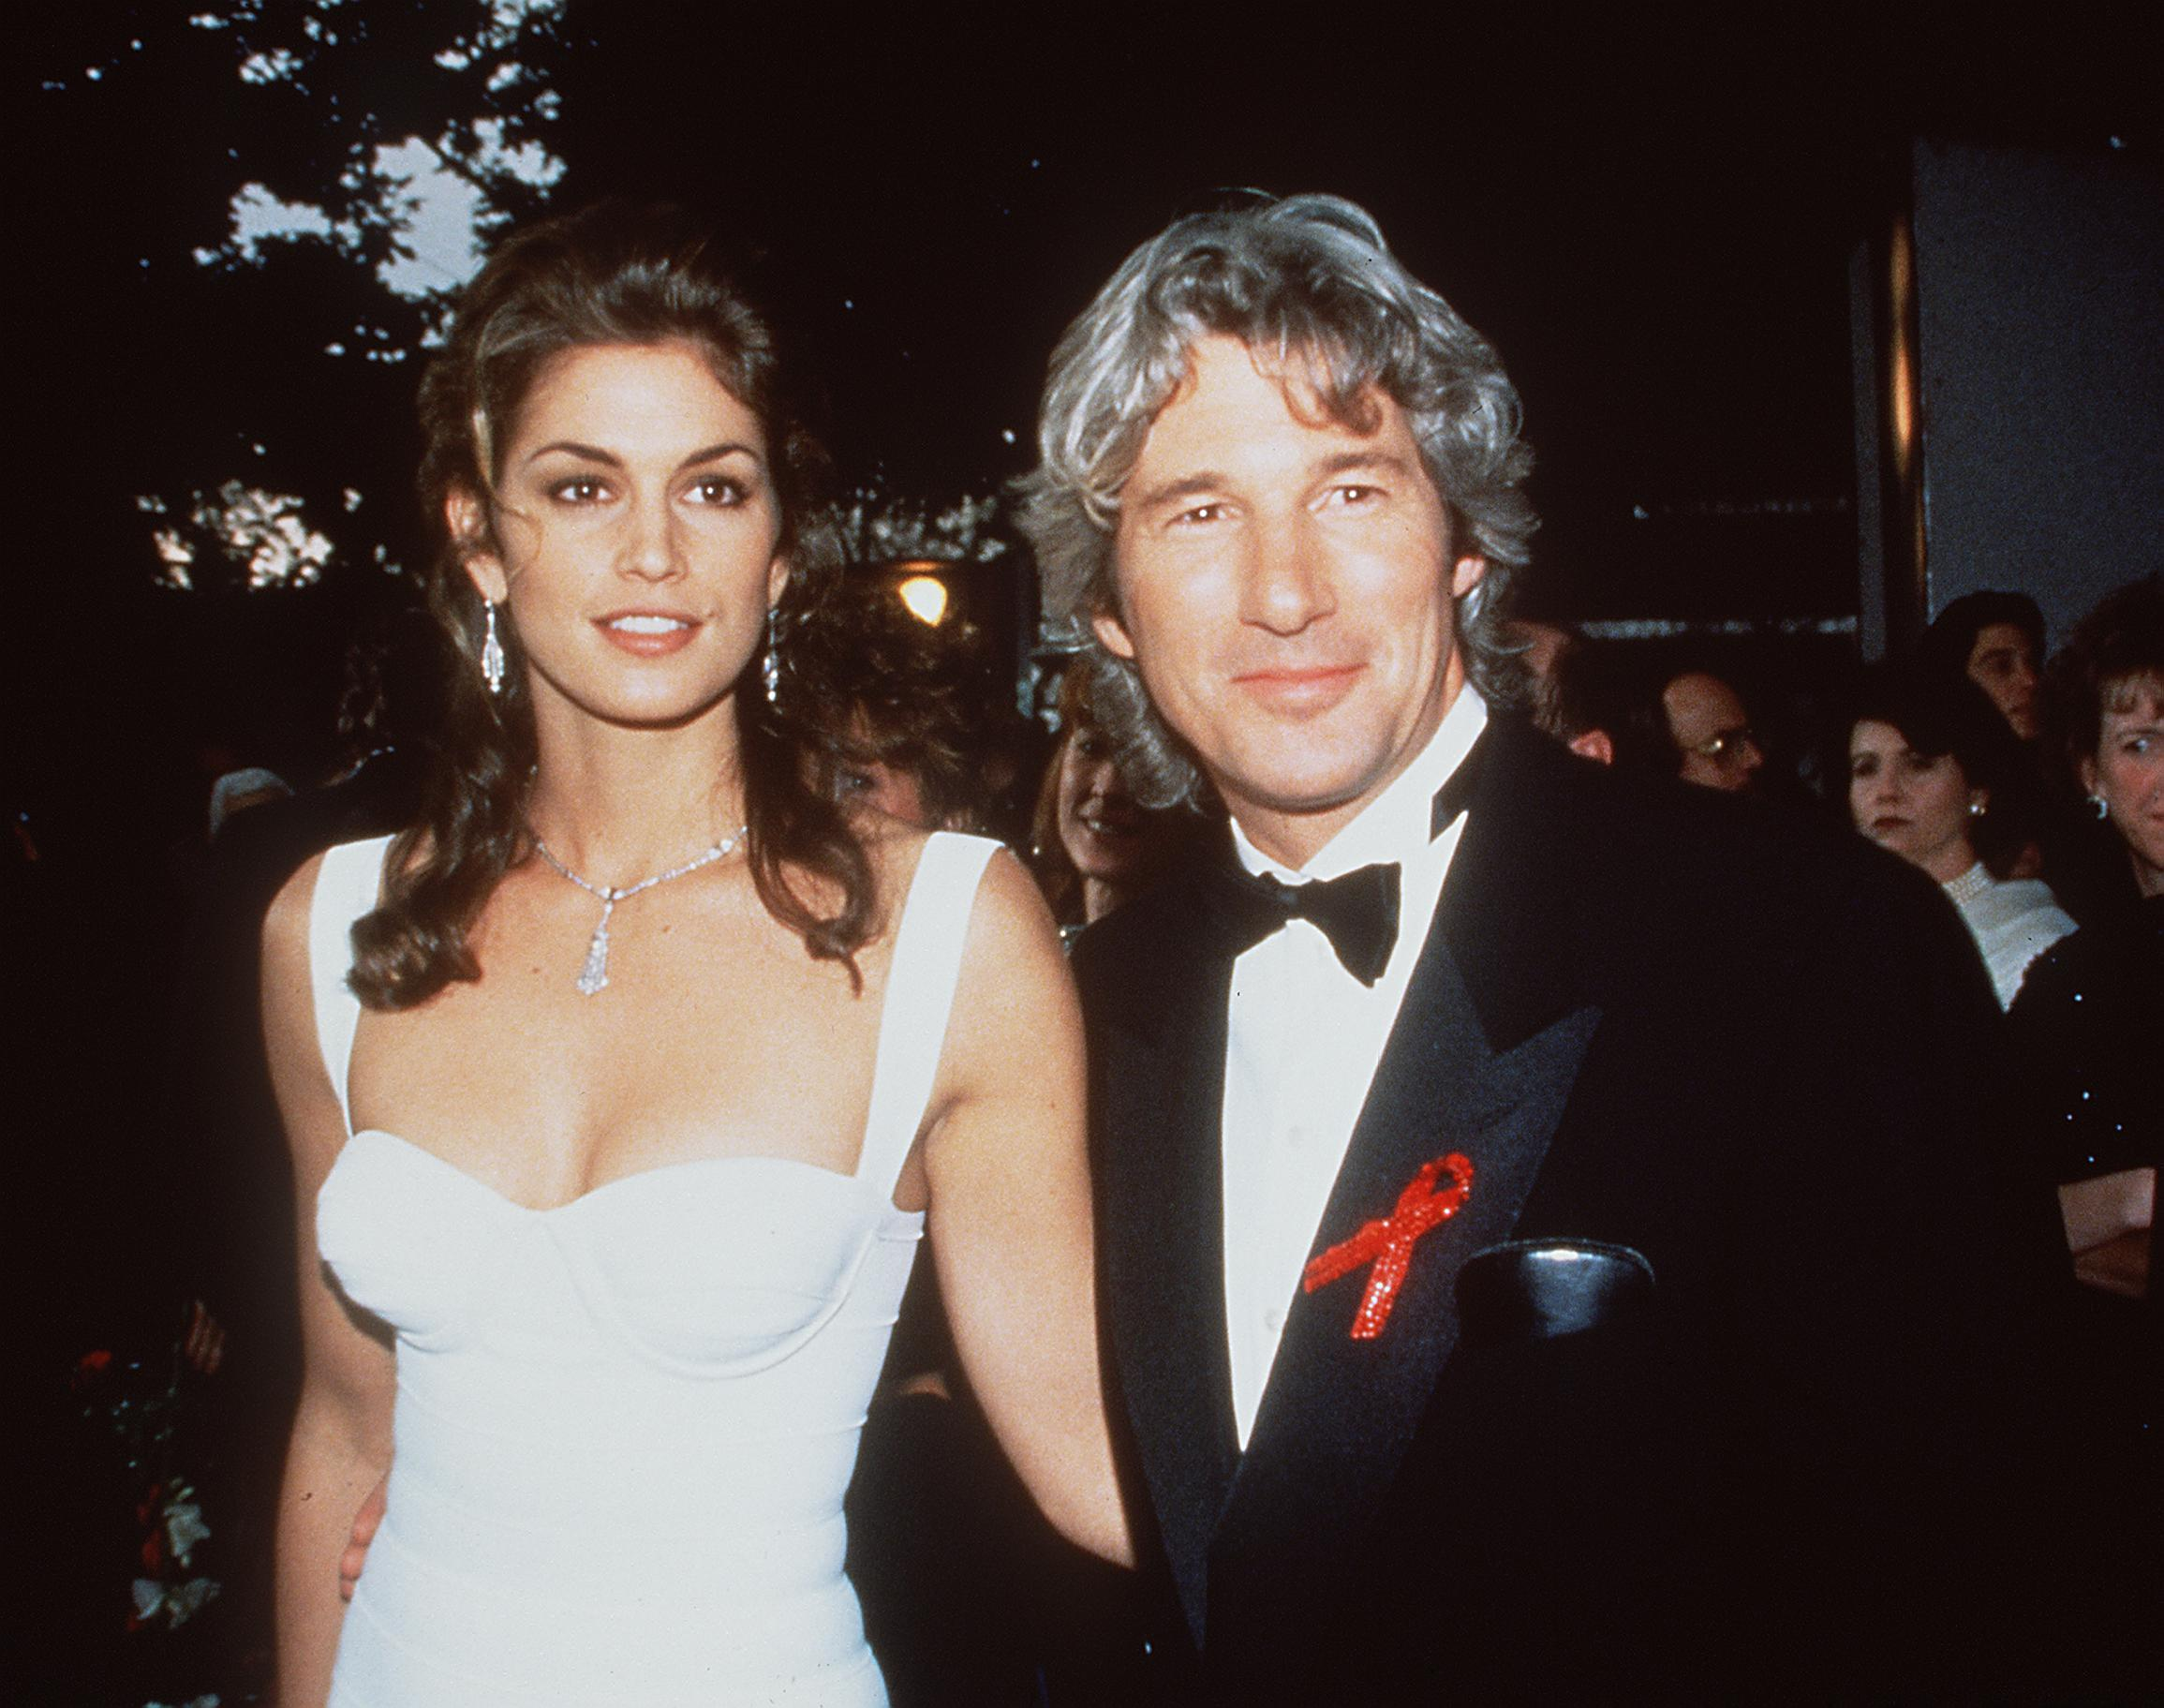 Cindy Crawford and Richard Gere, circa 1993 | Photo: GettyImages